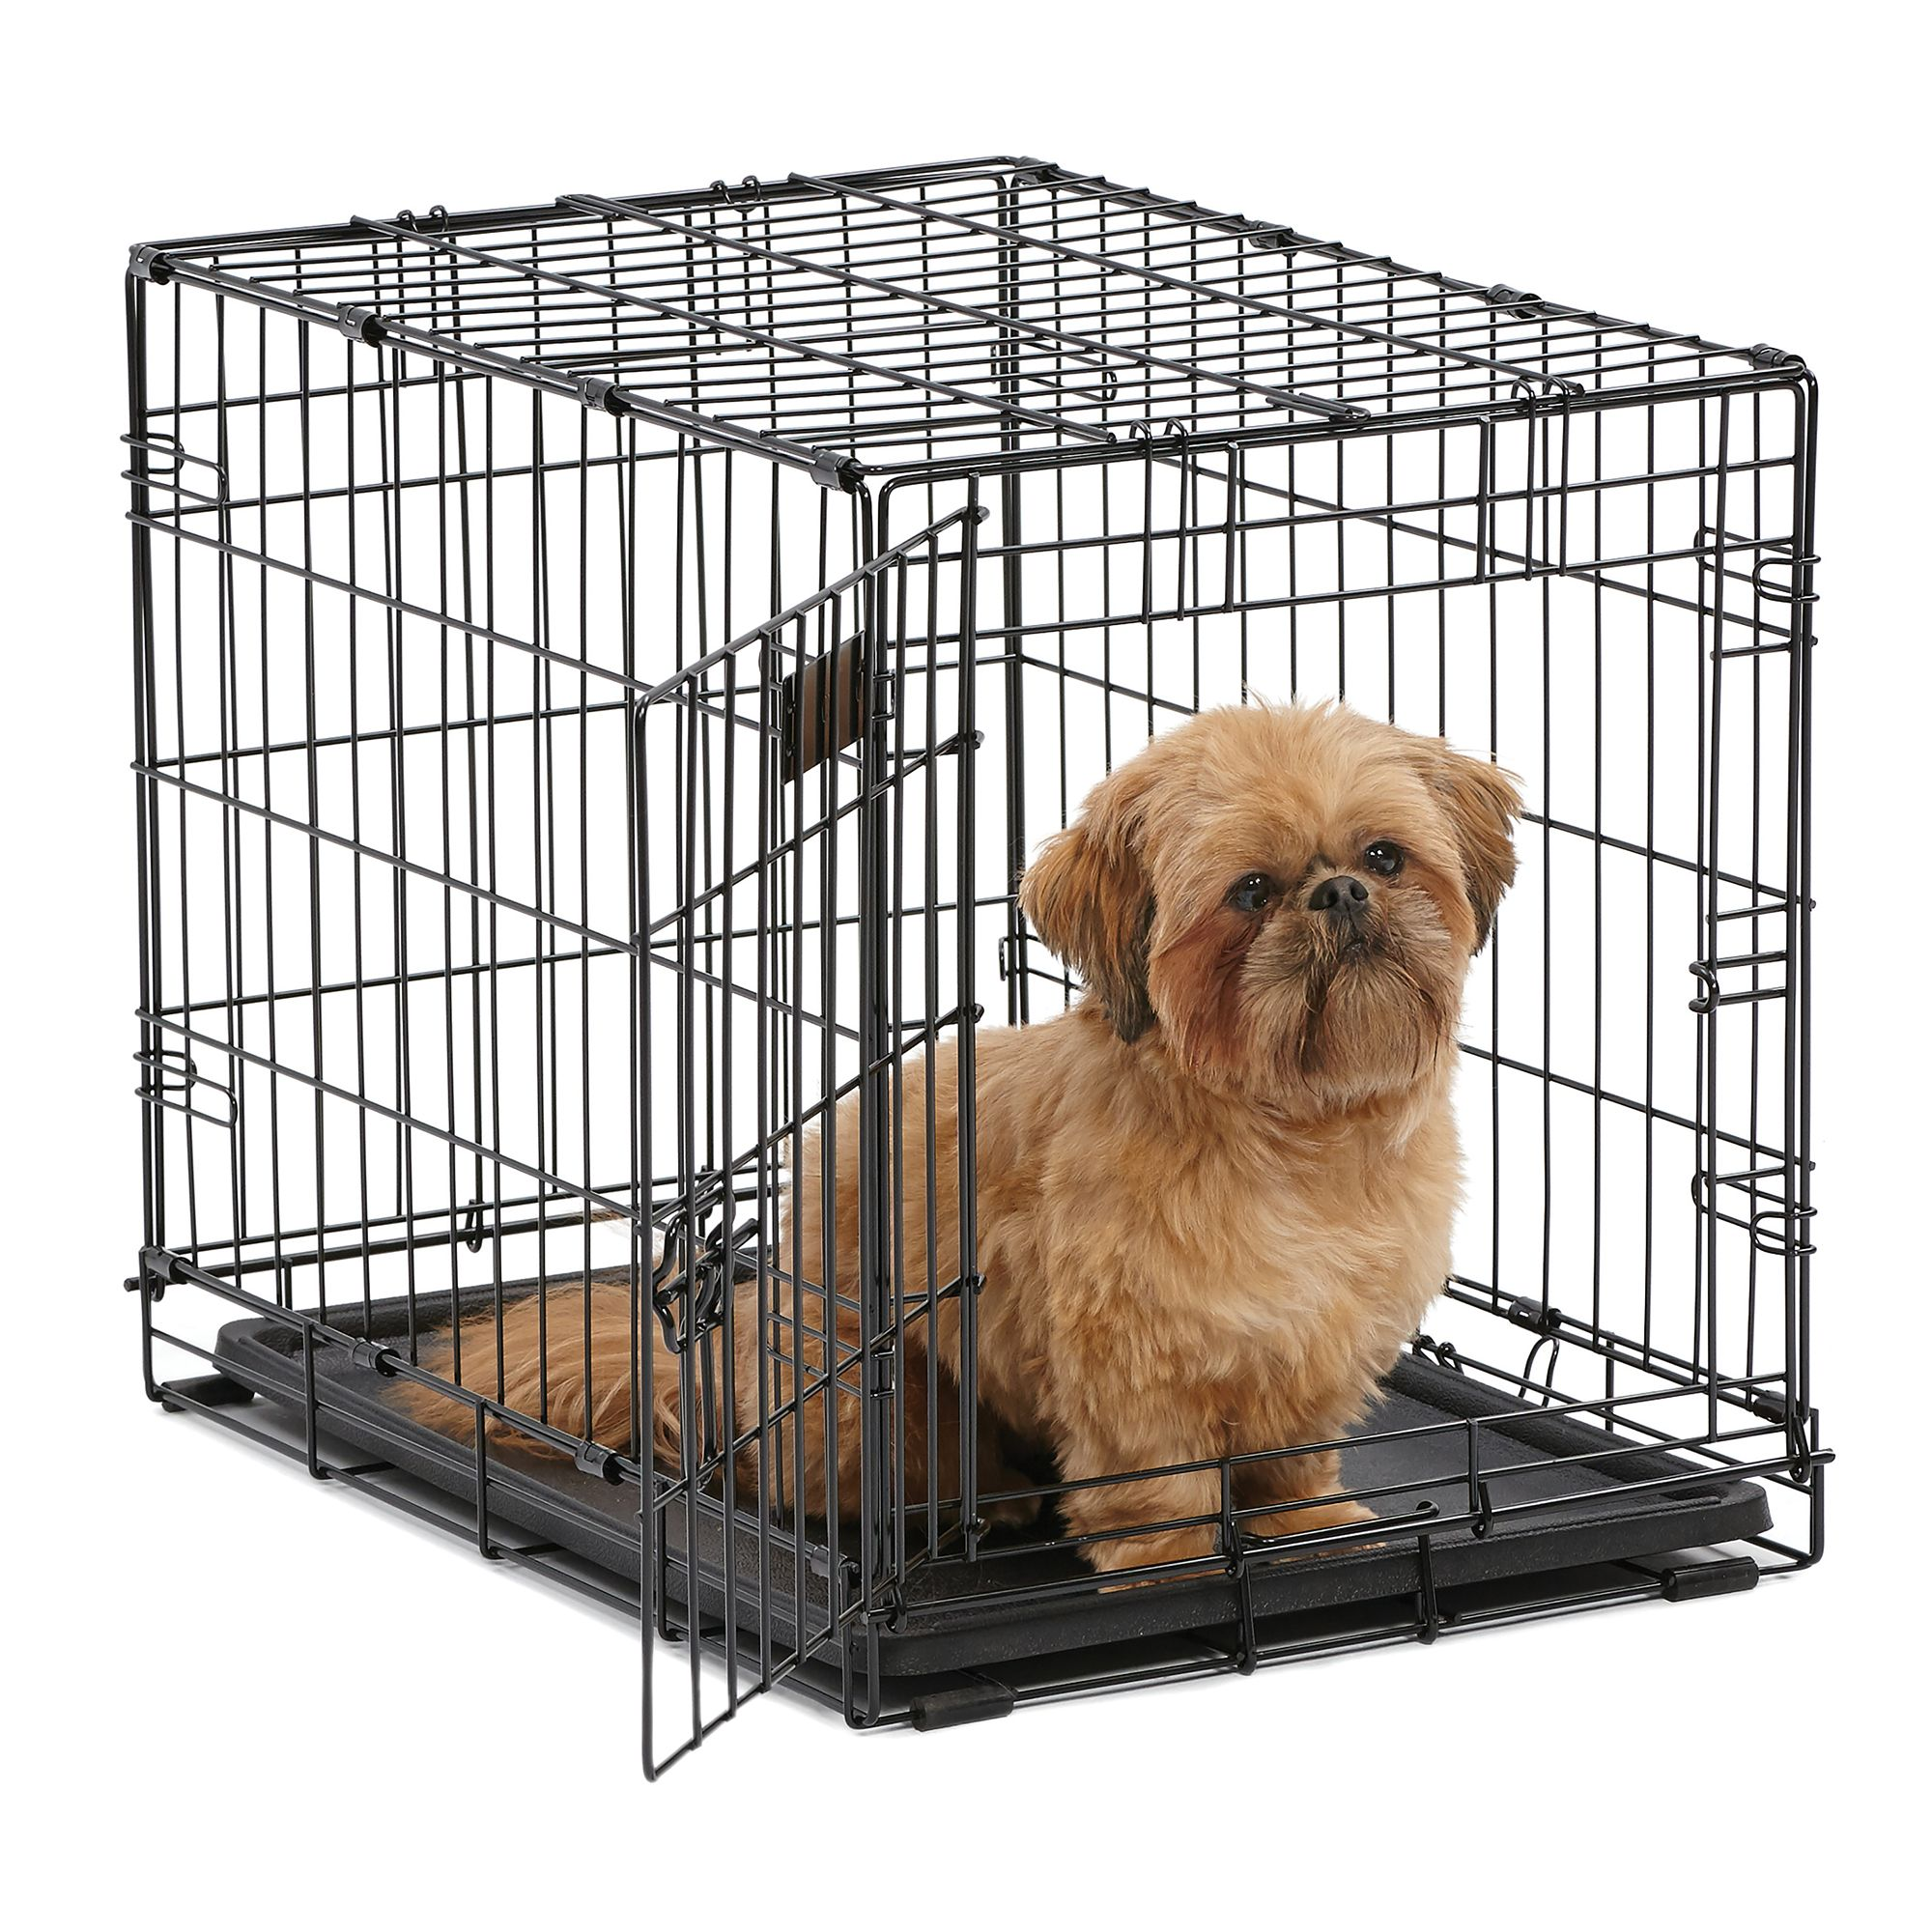 "Midwest iCrate Dog Crate size: 24""L x 18""W x 19""H, Black 5142221"